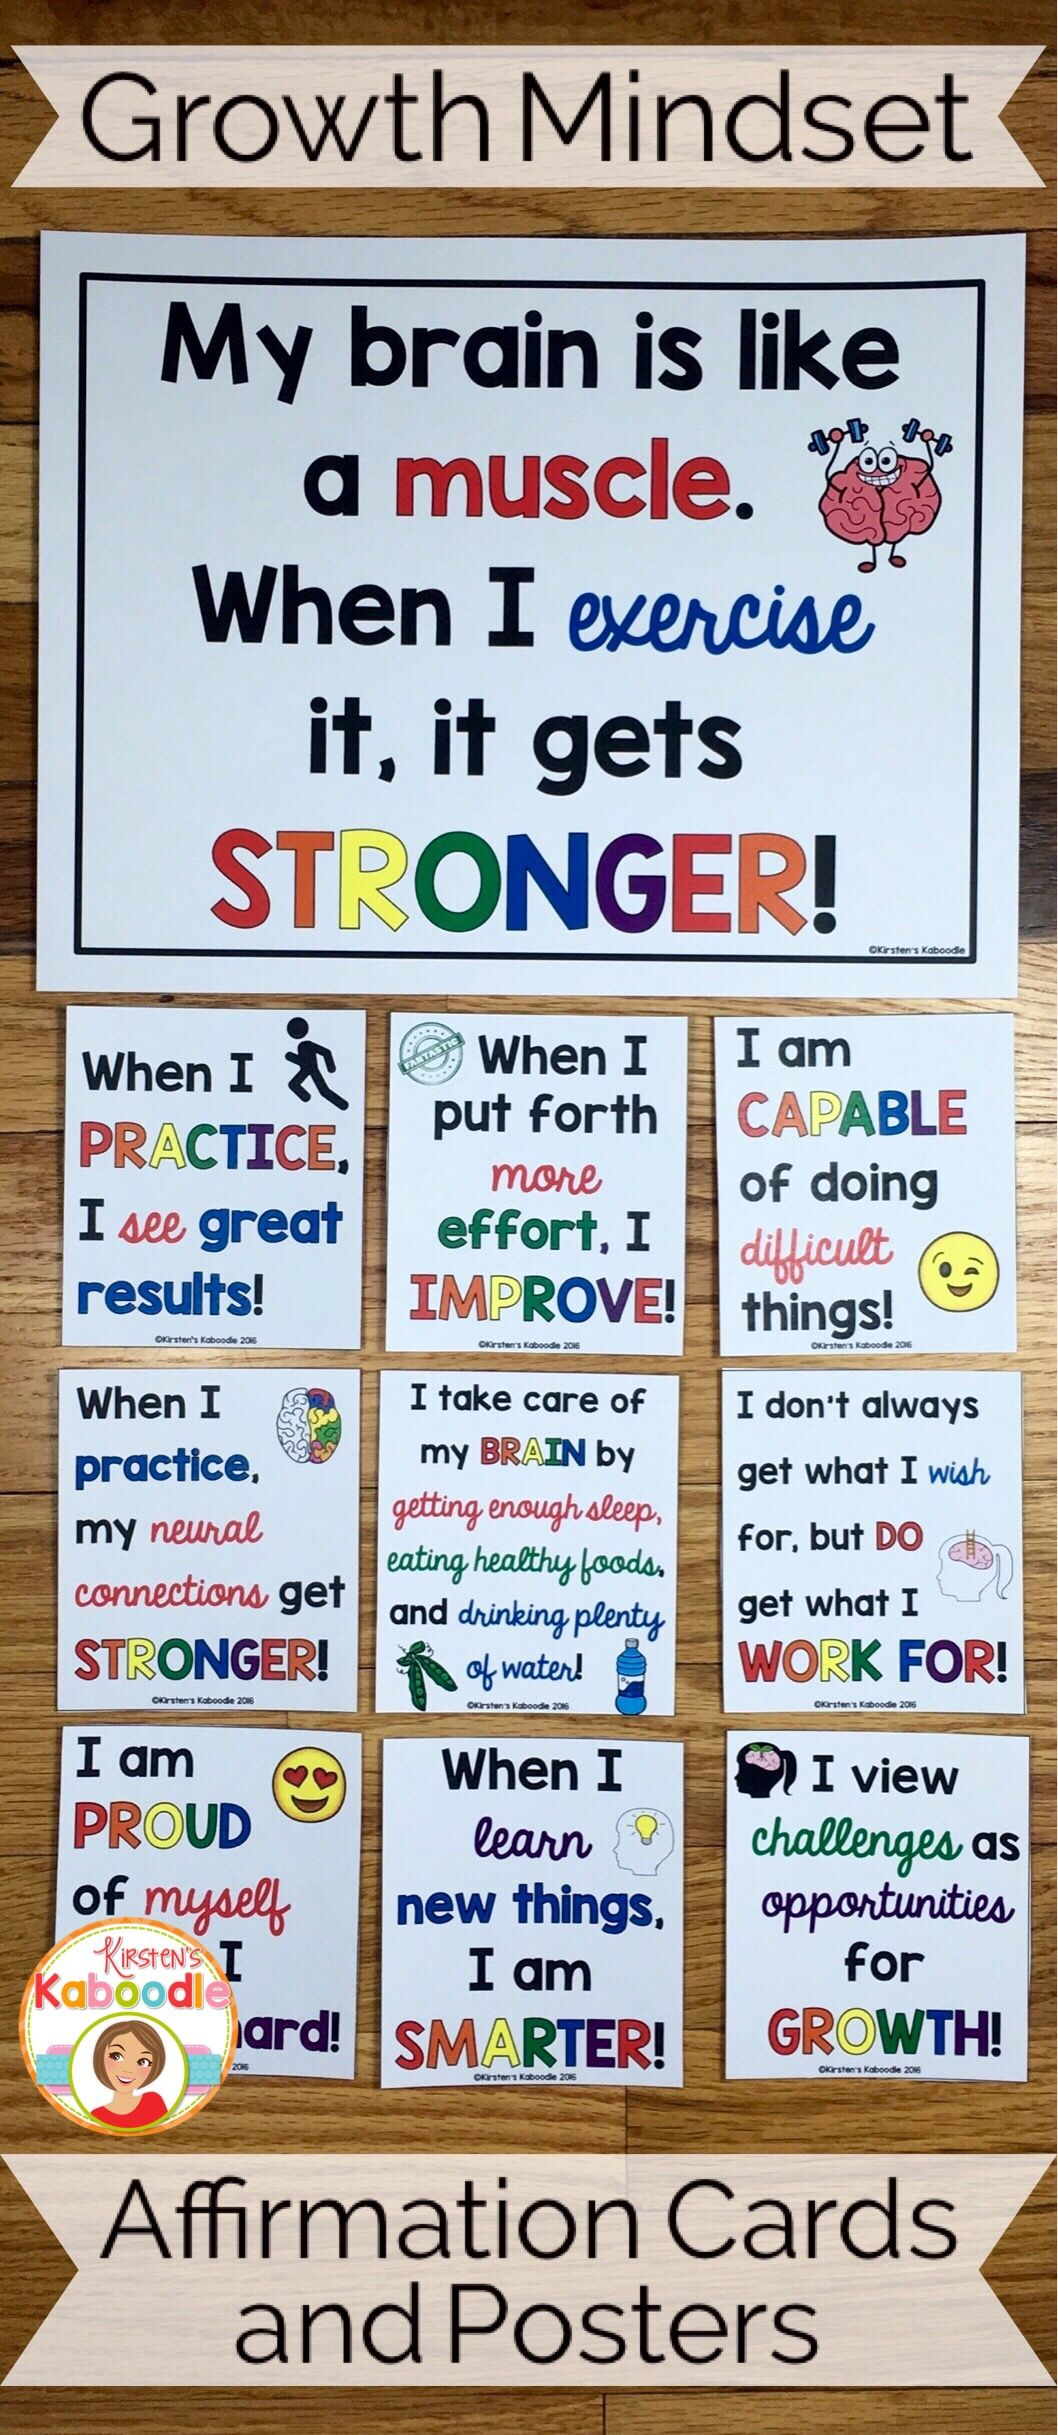 Growth Mindset Affirmations | Kirsten's Kaboodle Ideas and